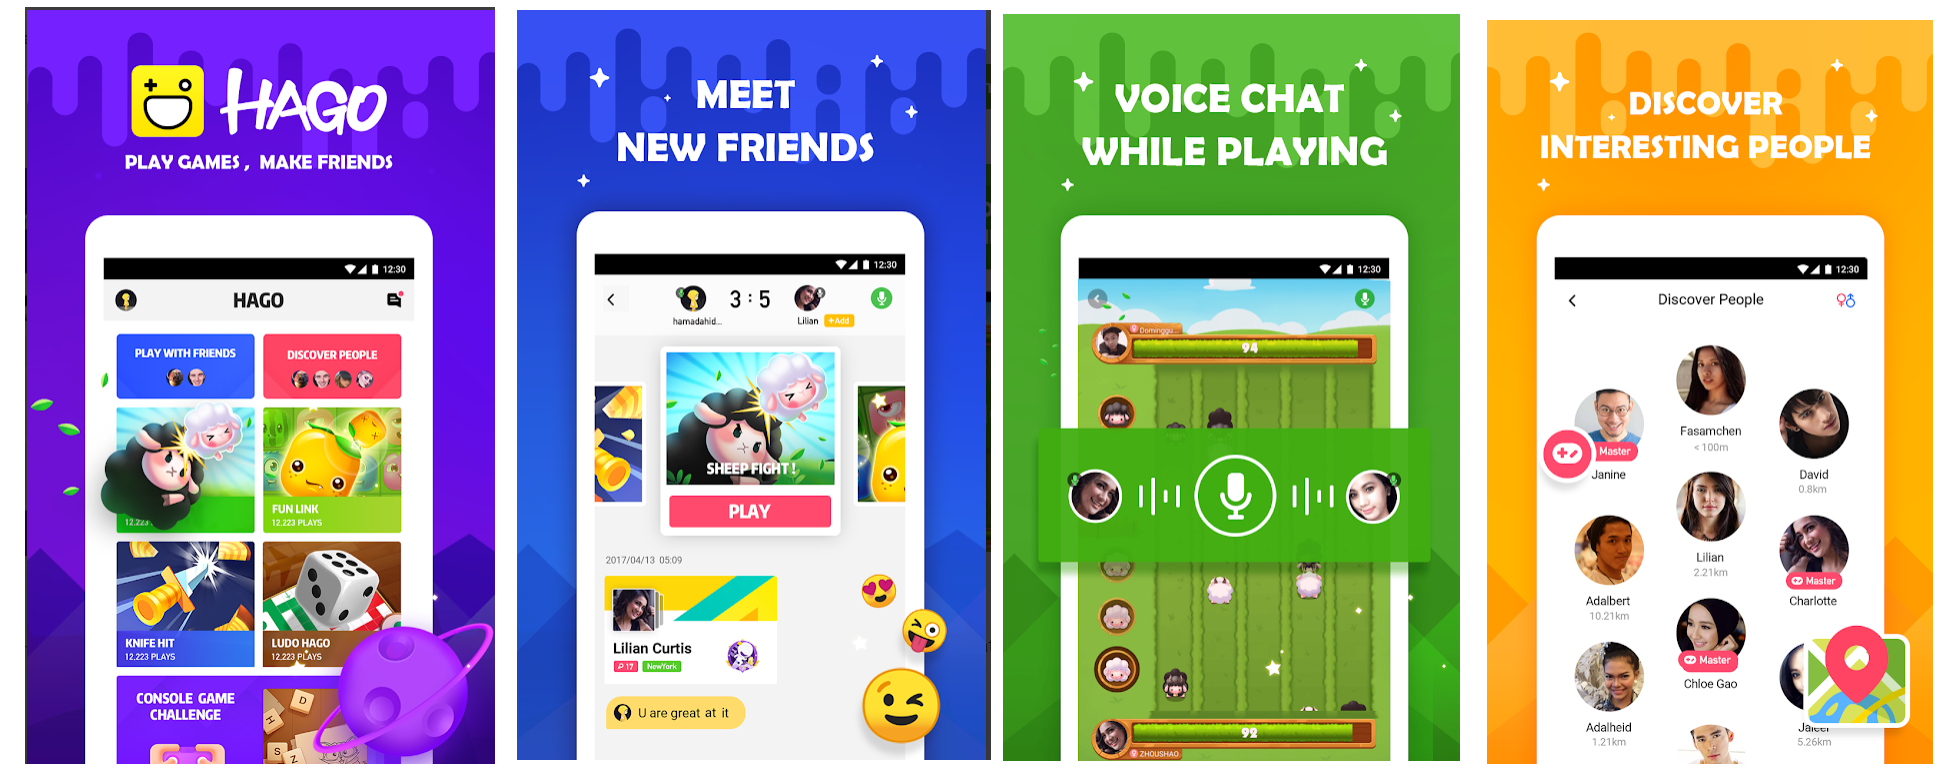 Hago — Inside the new gaming app that is re-imagining social